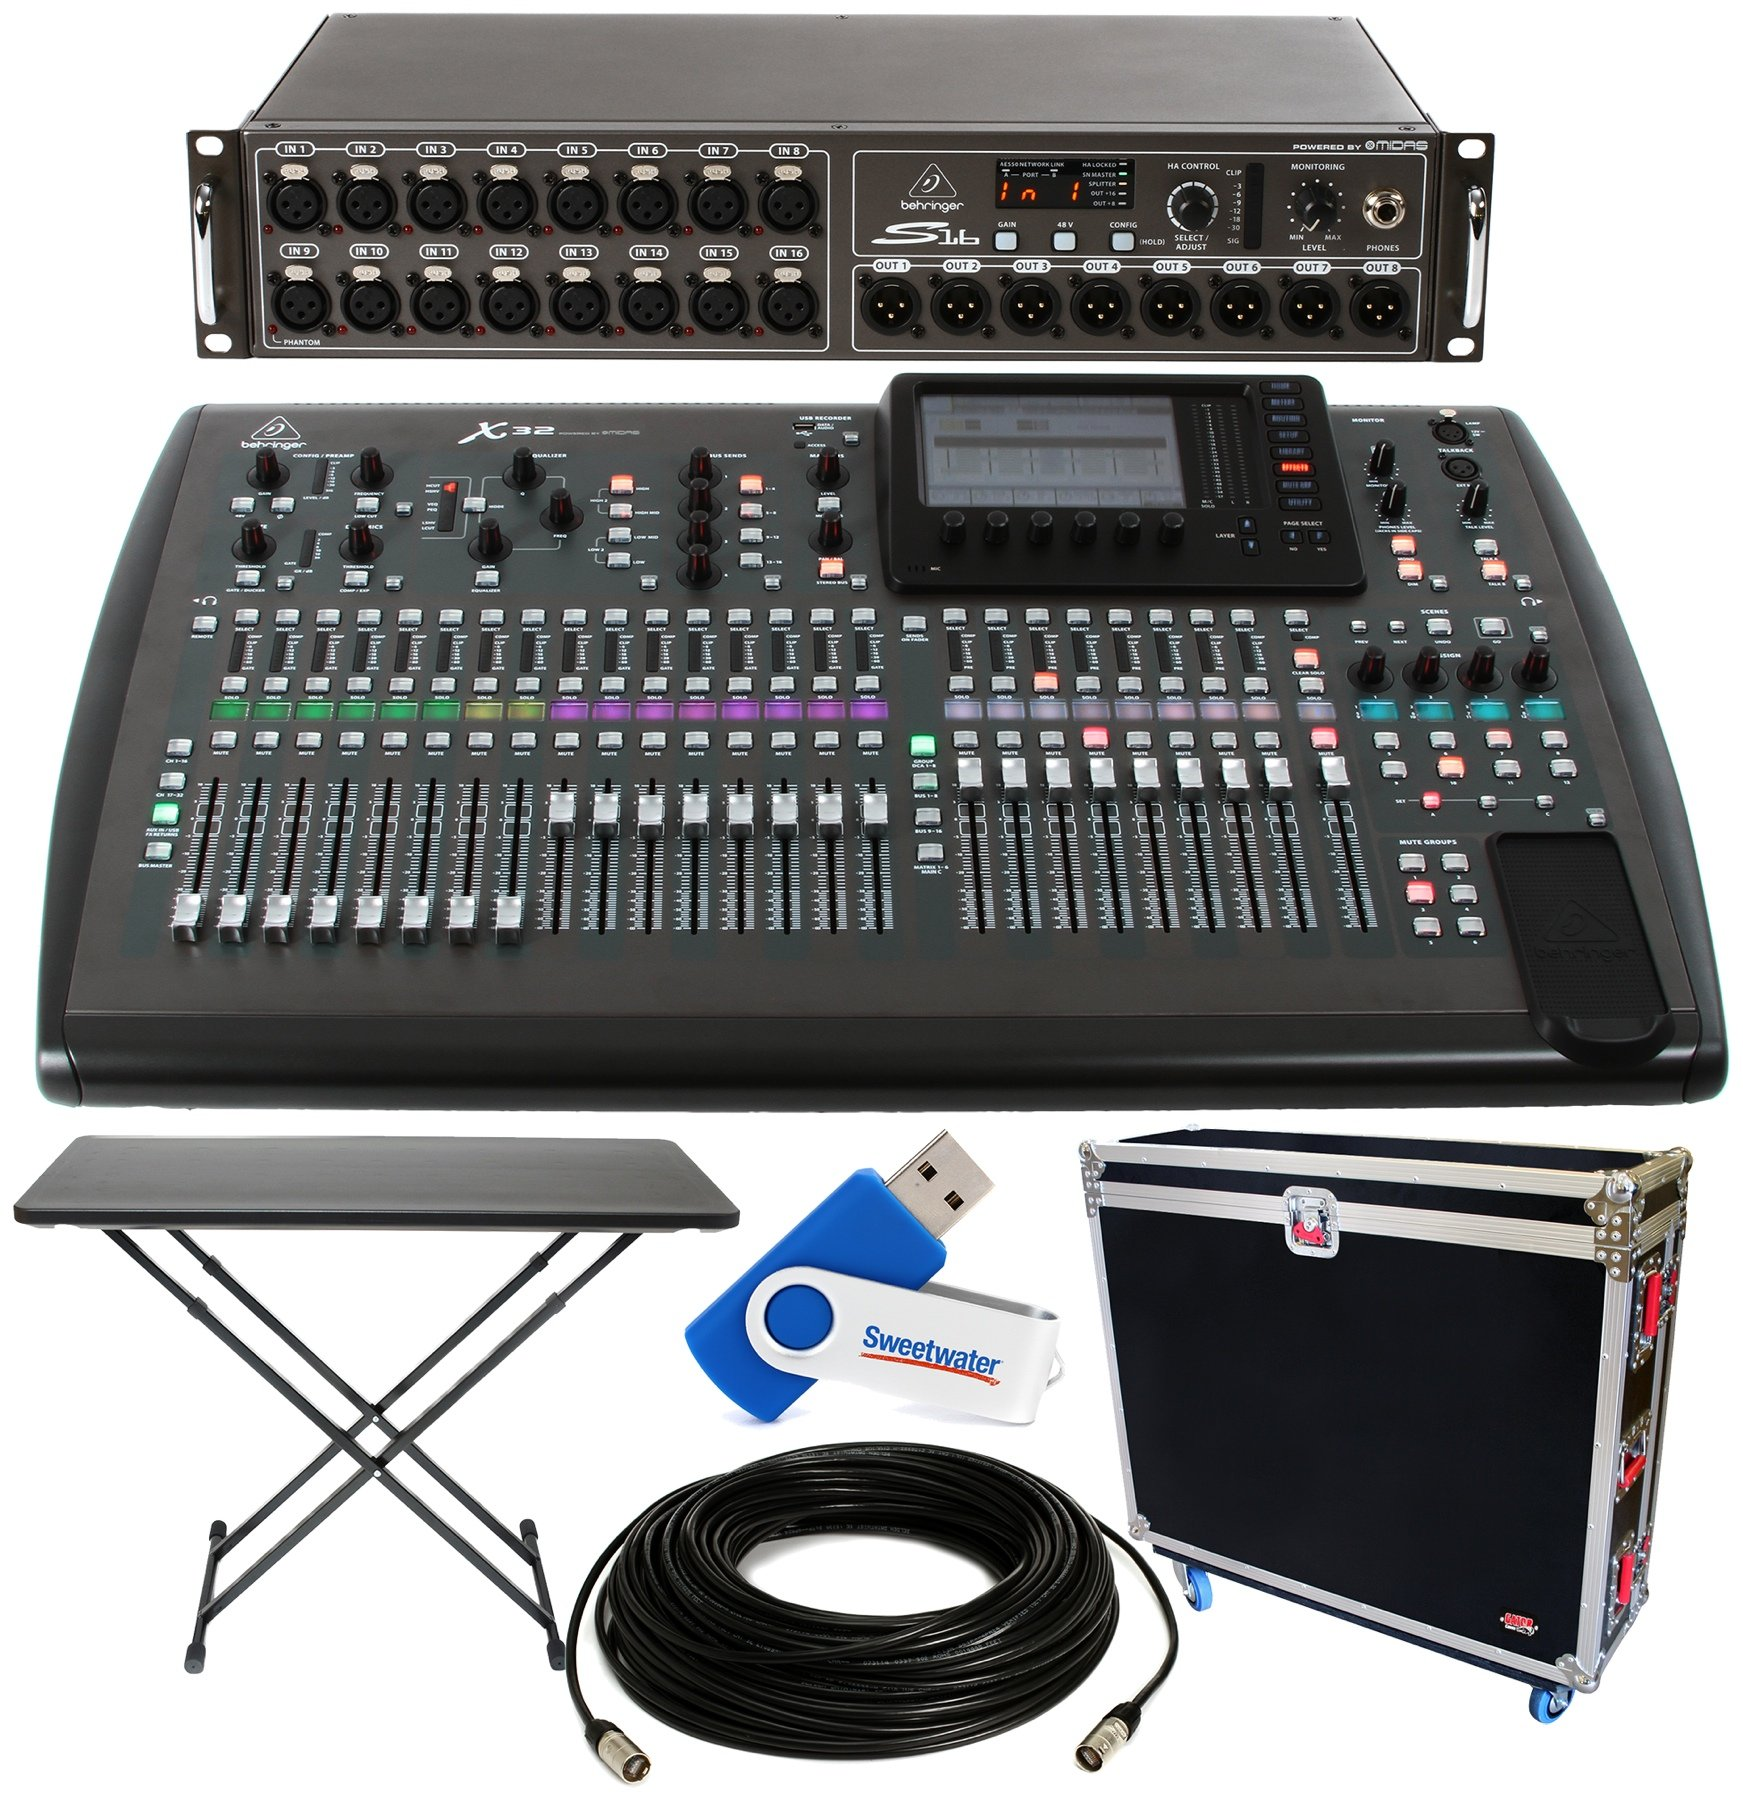 X32 Rack Live Performance Setup With S16 X32 And P16 Monitor System